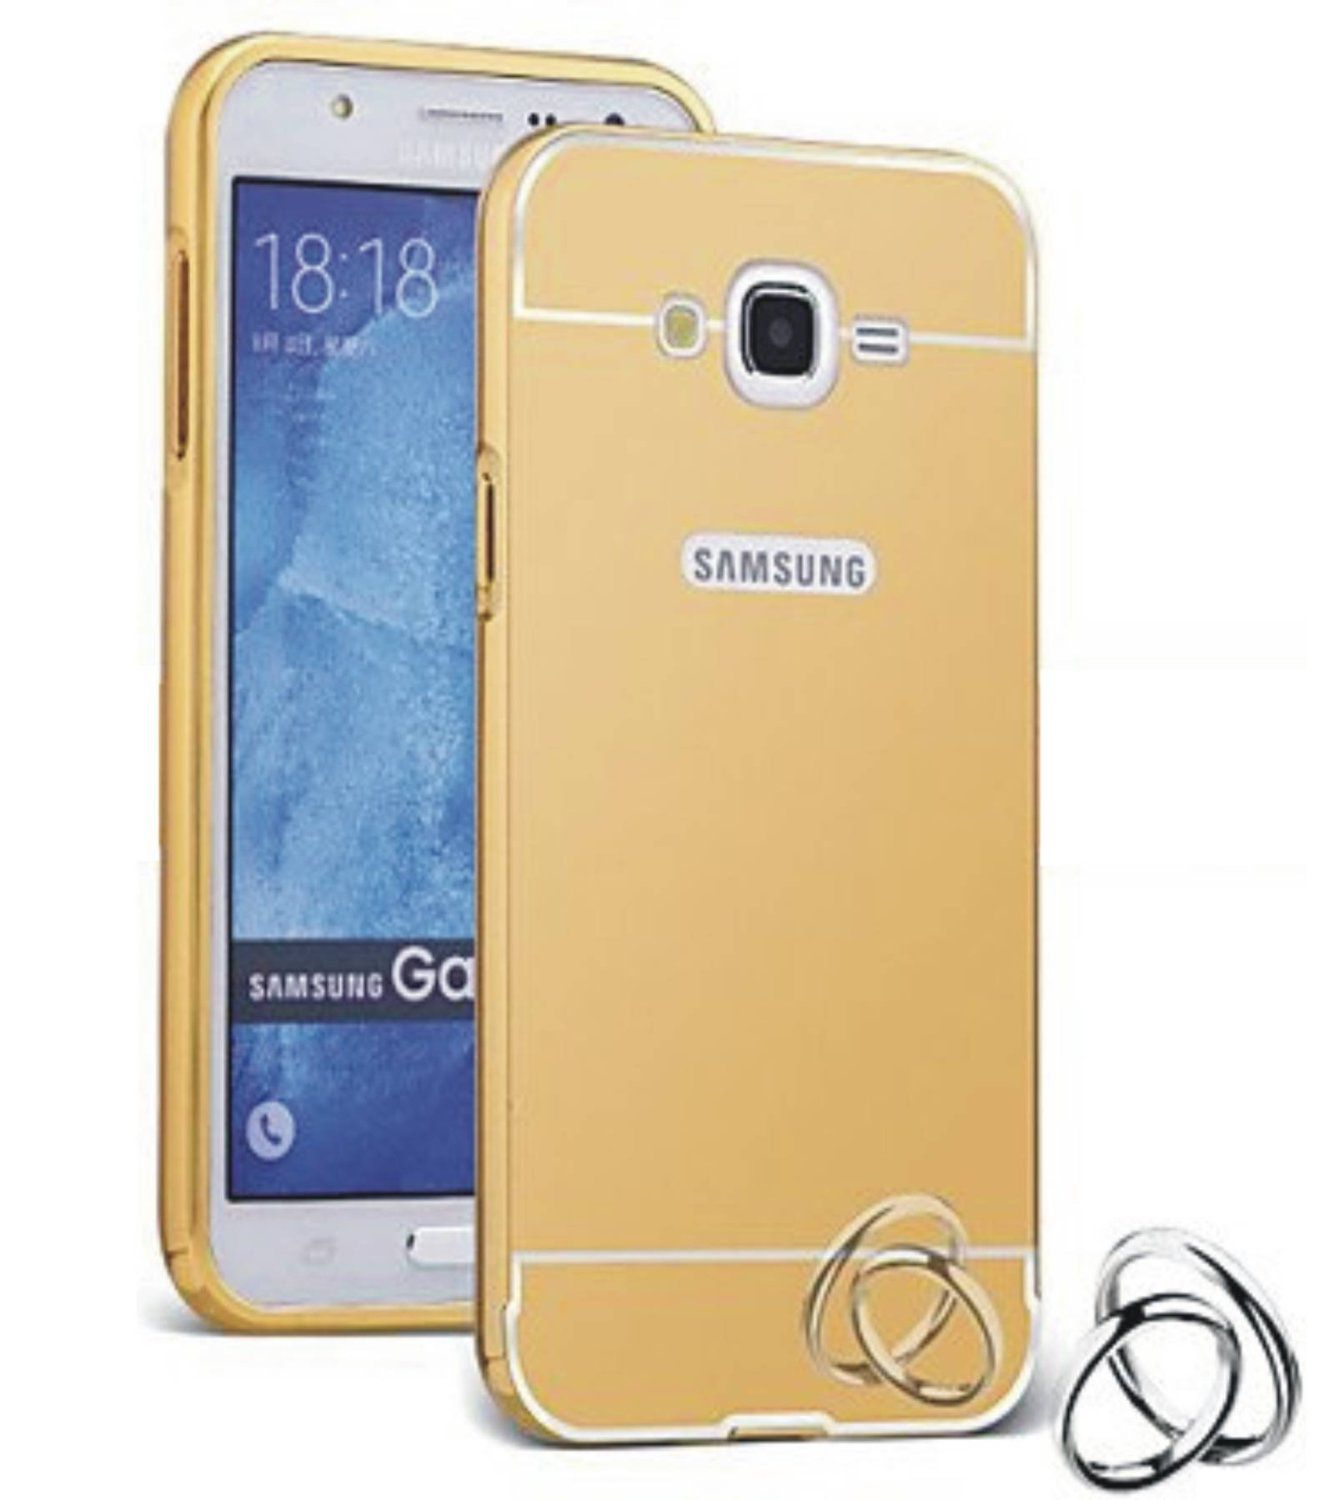 Style Crome Metal Bumper + Acrylic Mirror Back Cover Case For SamsungJi Ace Gold + Flexible Portable Thumb OK Stand